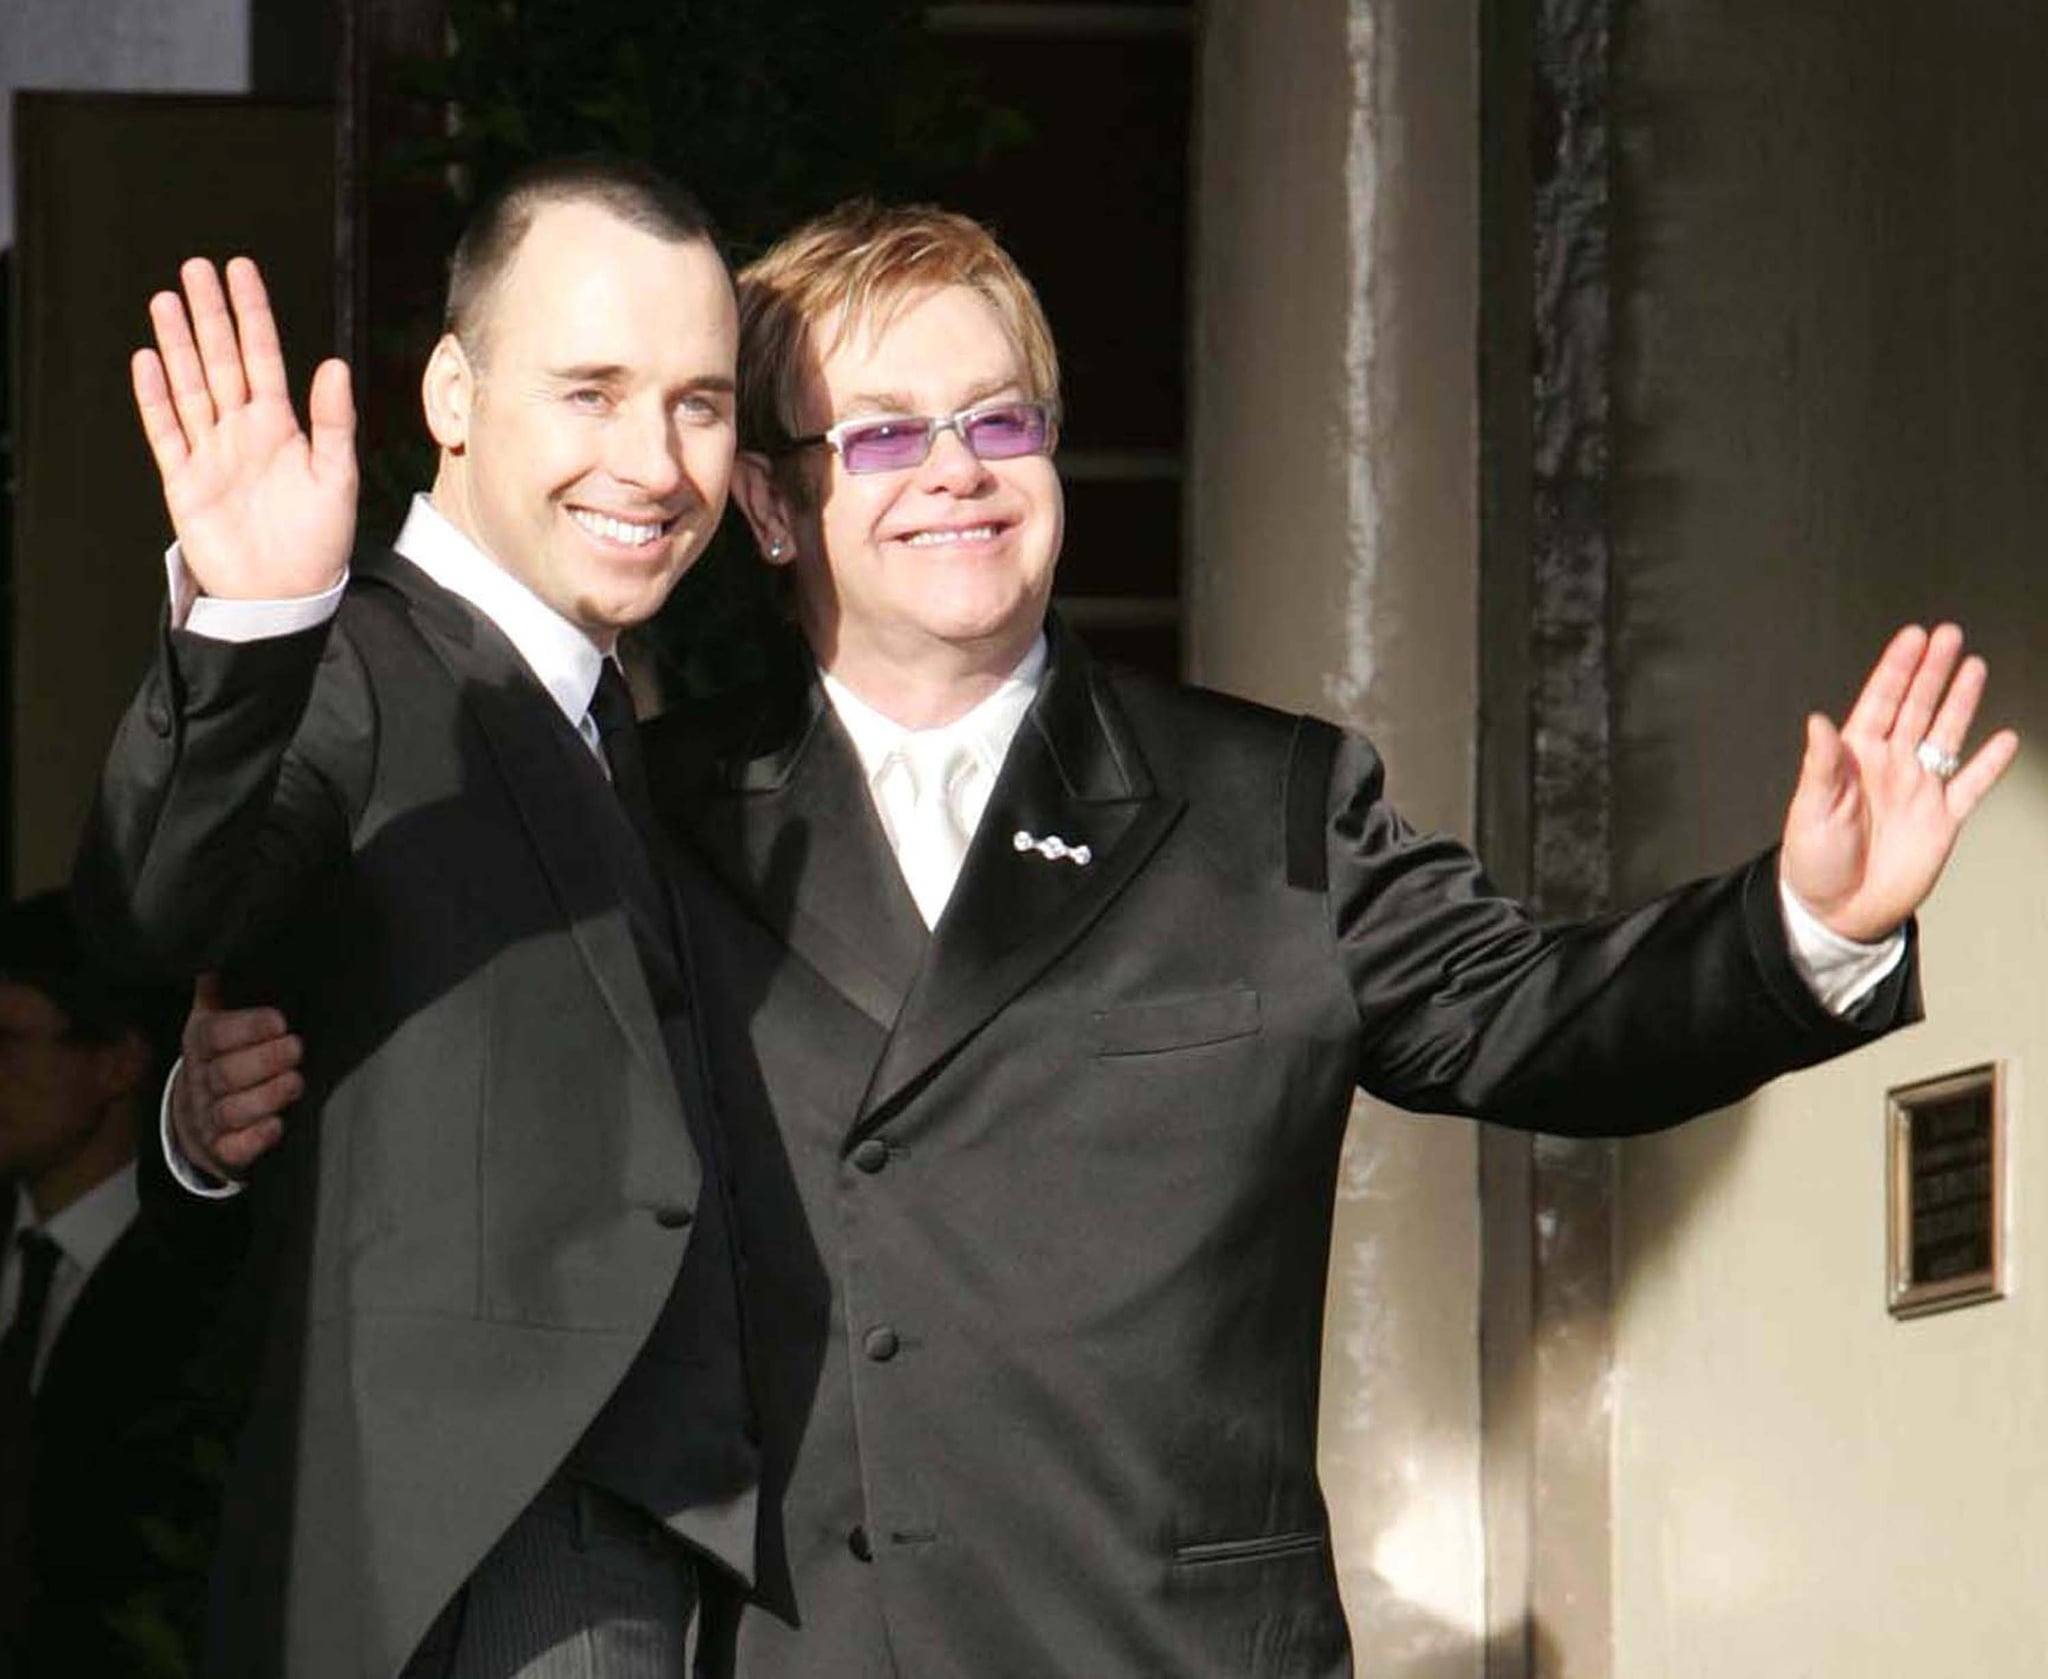 David Furnish and Sir Elton John during Sir Elton John and David Furnish's Civil Partnership Ceremony at Guildhall in Windsor, Great Britain. (Photo by Goffredo di Crollalanza/FilmMagic)